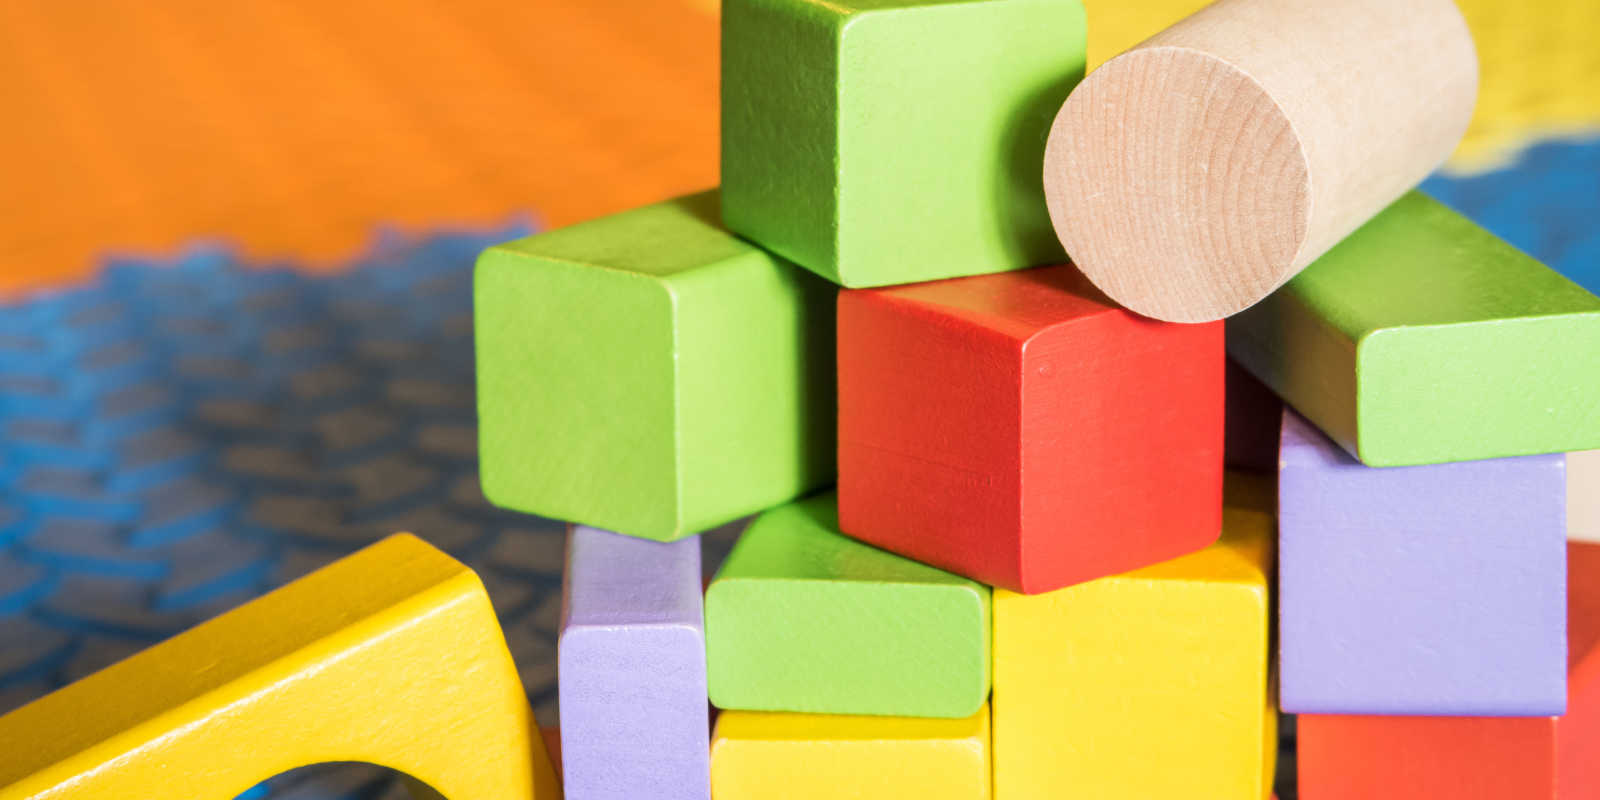 coloured children's blocks on a play mat